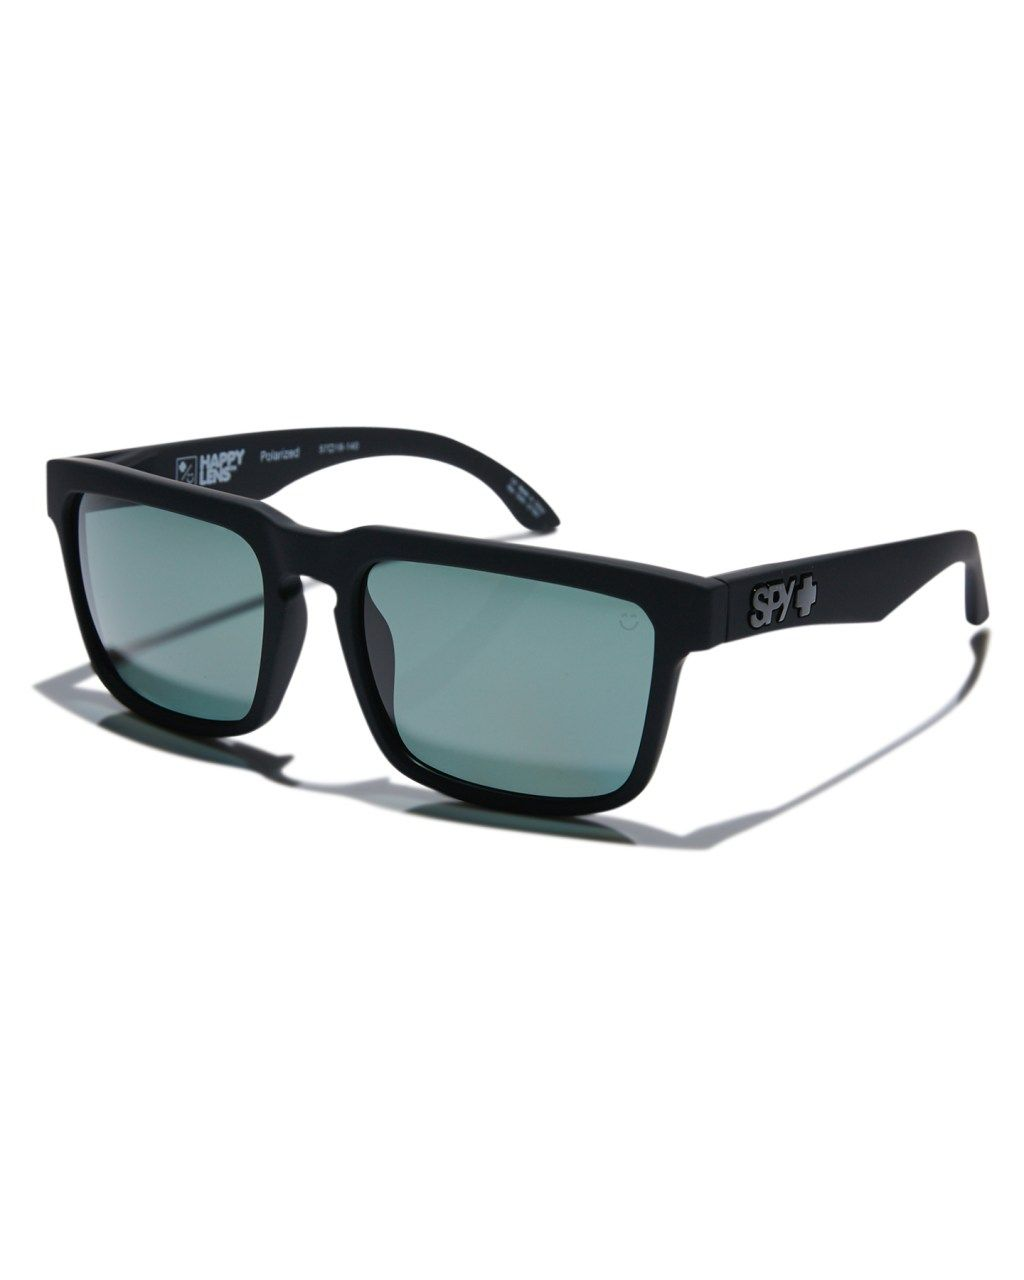 a75e7024f70 Spy Helm Happy Lens Polarised Sunglasses Matte Black Green Mens sunglasses  Size